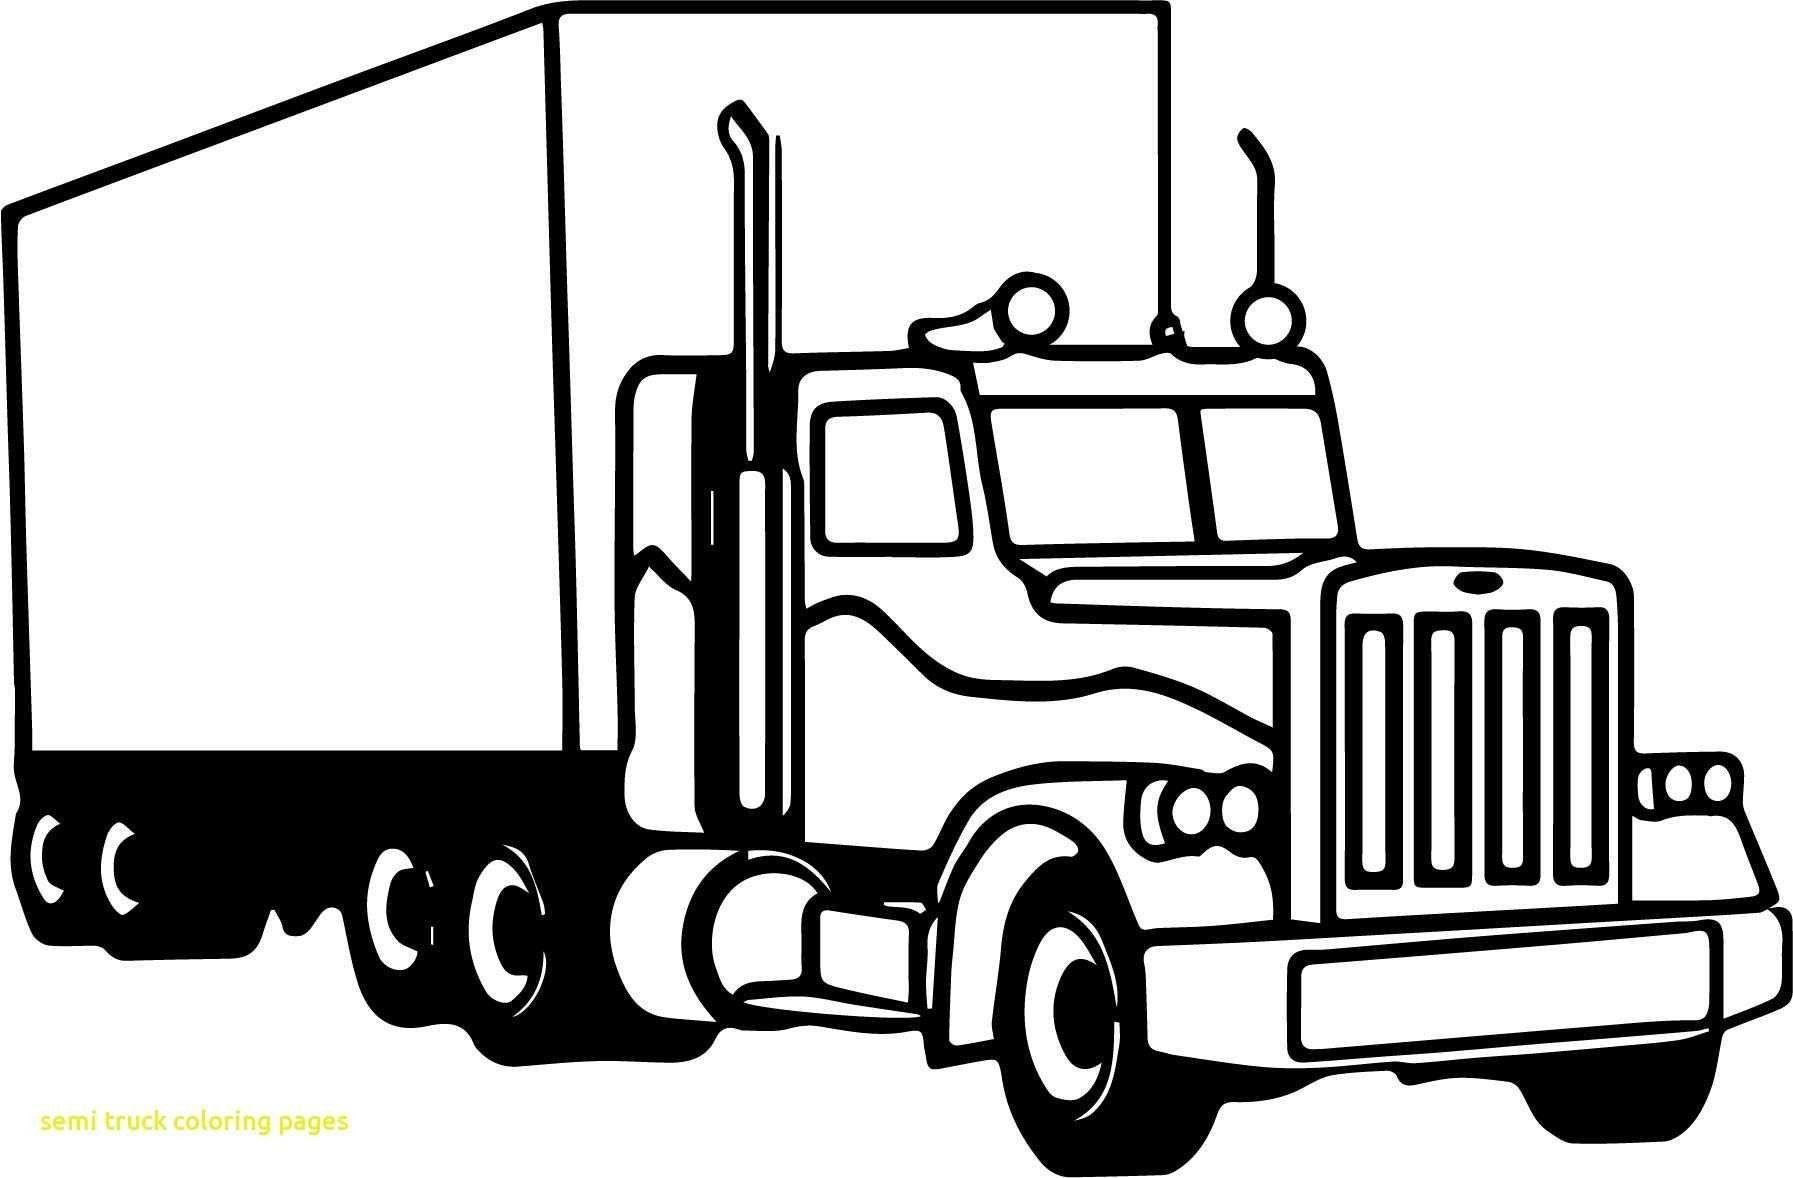 Fire Truck Coloring Page Best Of Coloring Pages Tremendous Truck Coloring Book Grave Digg Truck Coloring Pages Cars Coloring Pages Monster Truck Coloring Pages